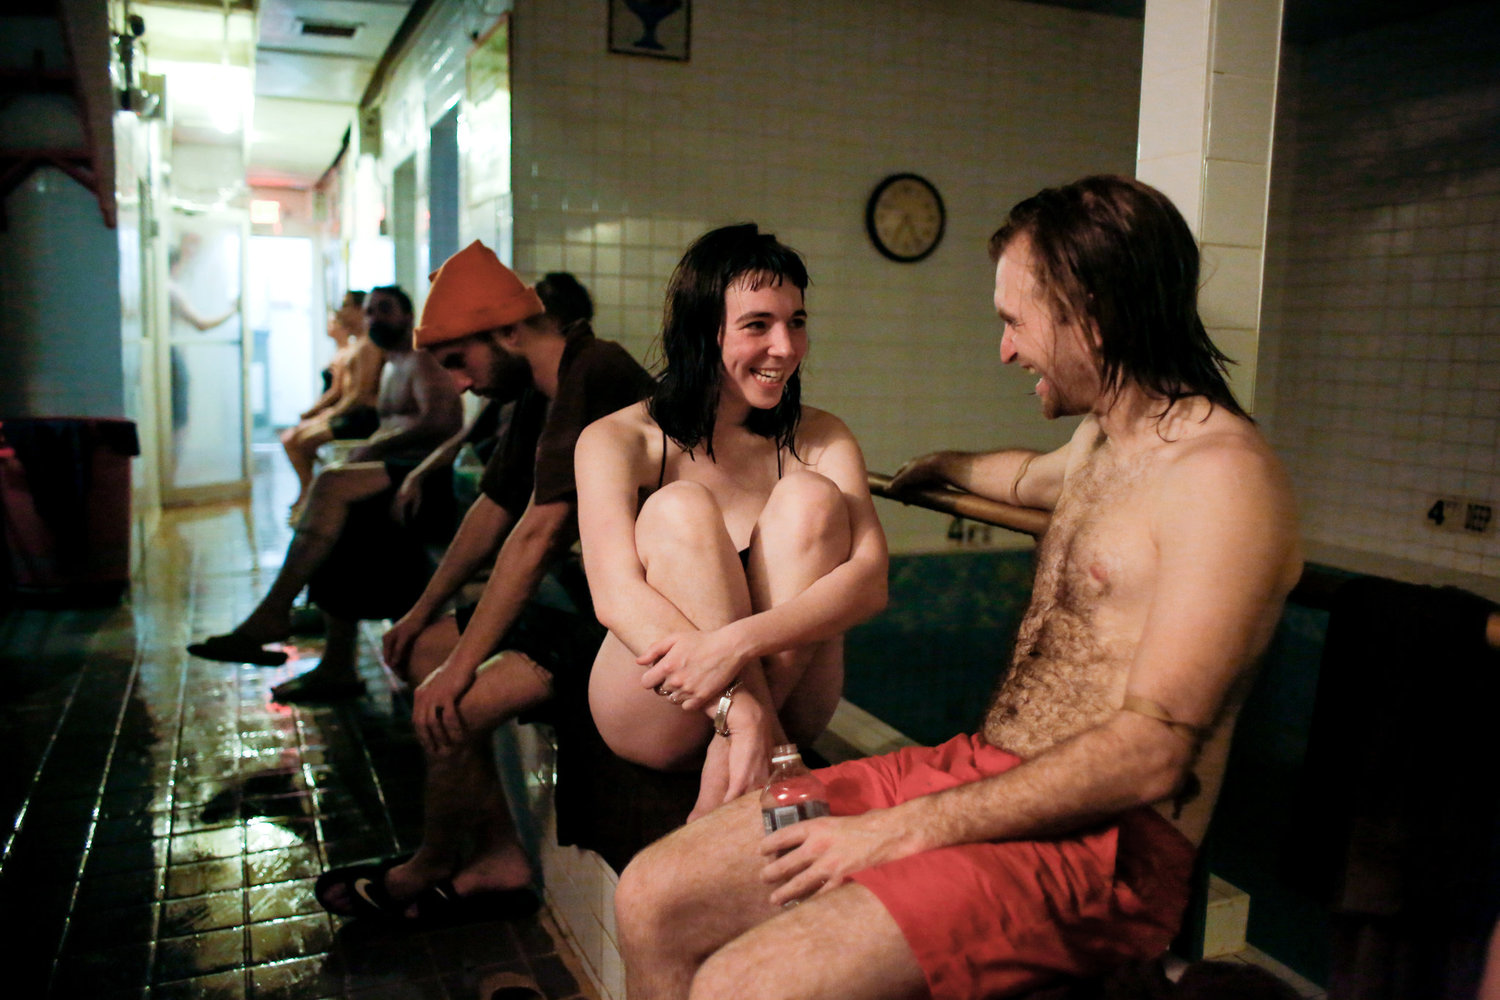 Sophia Giovannetti, 23, and Michael Swellander, 29, chatting between baths.